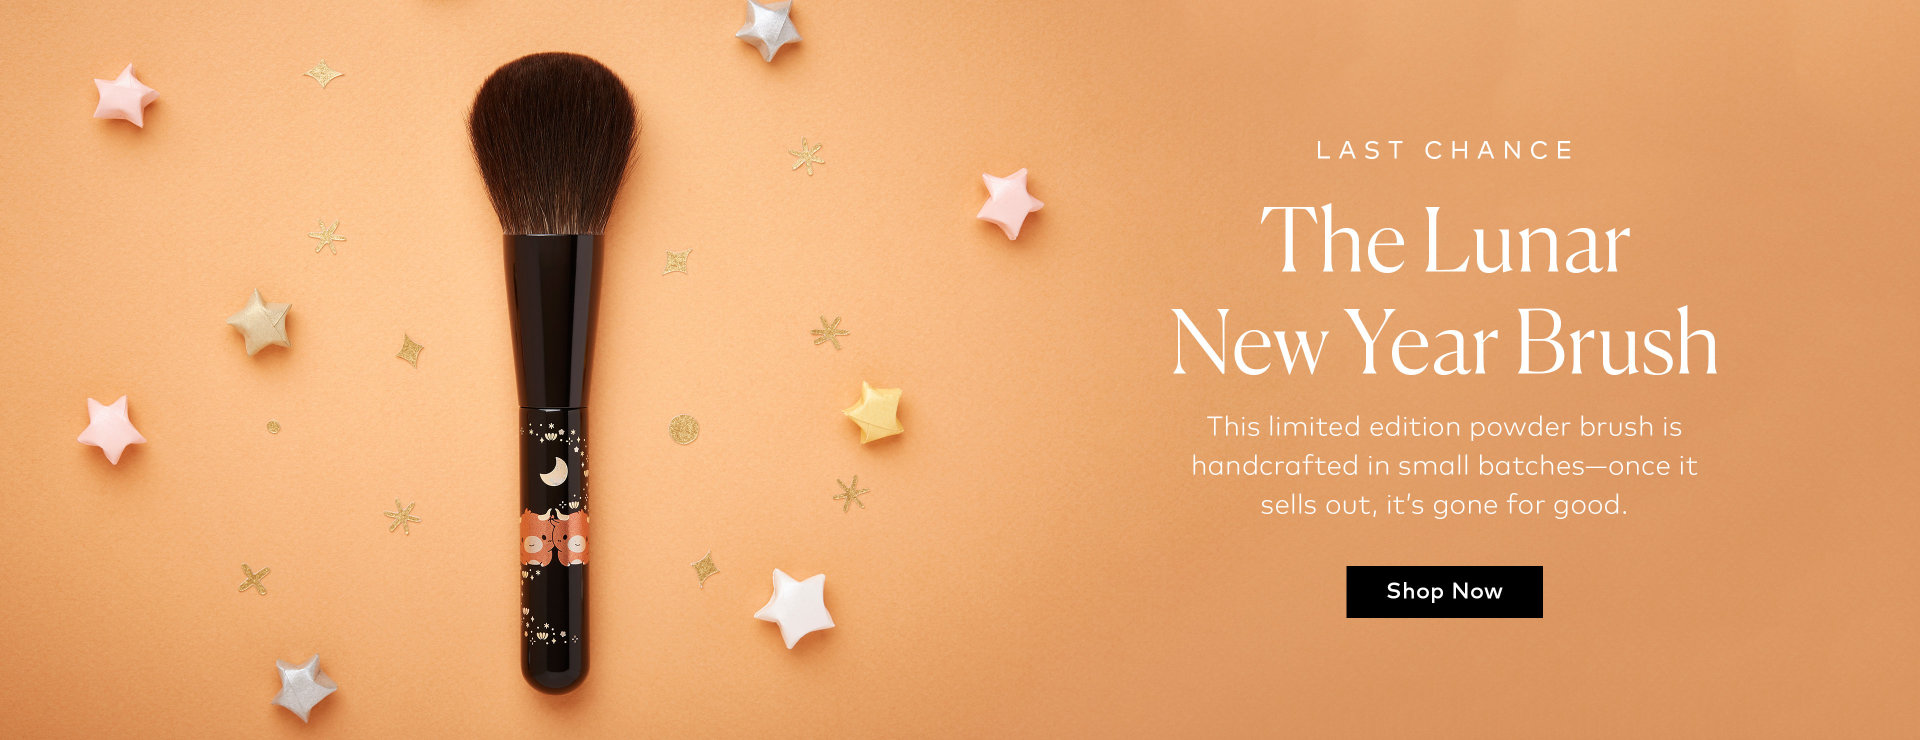 Last chance to shop the Lunar New Year Brush on Beautylish.com